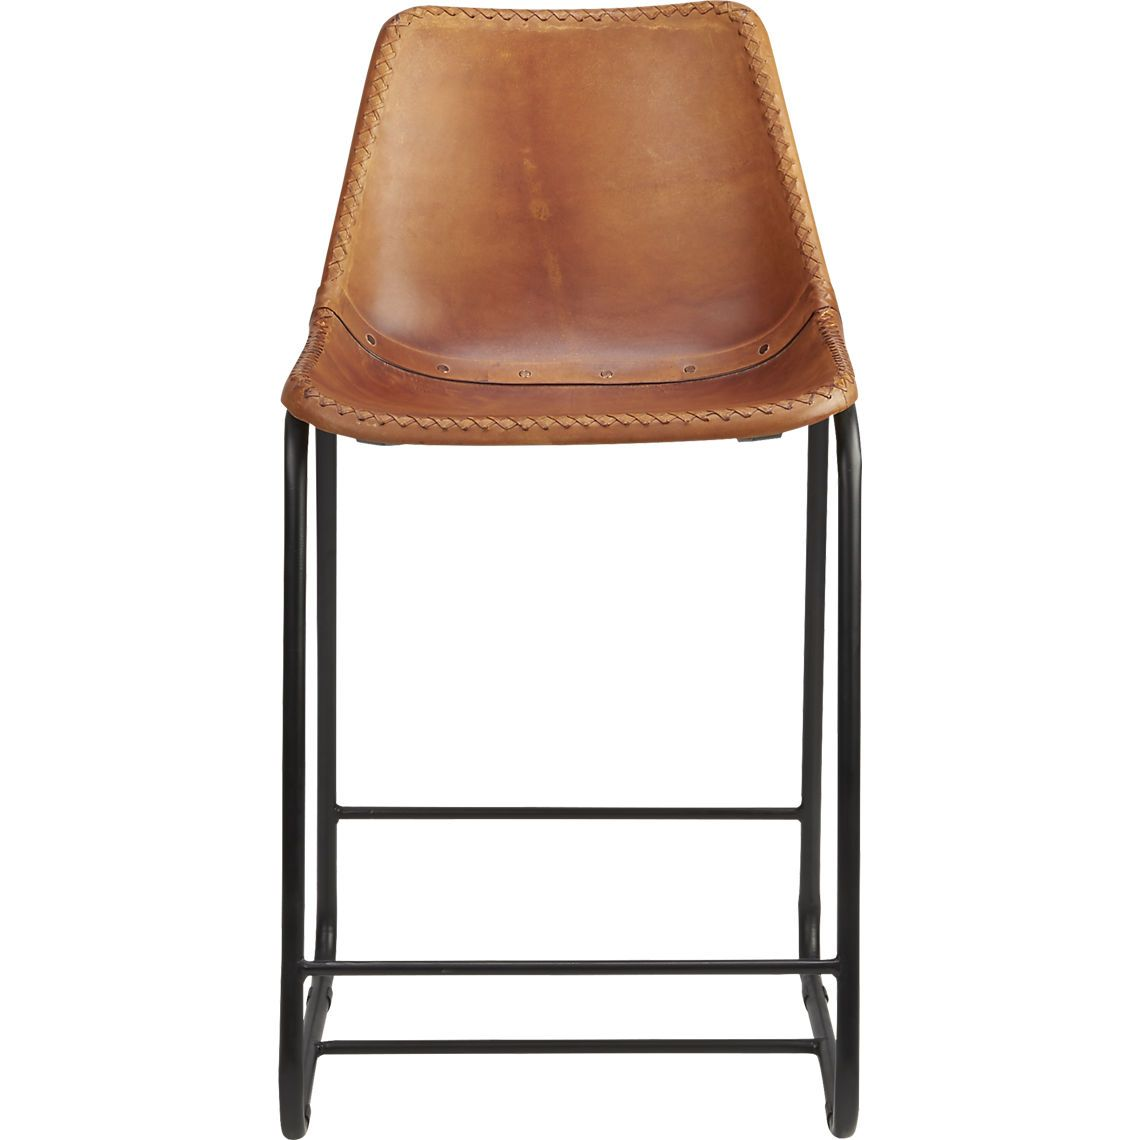 Roadhouse Leather Chair Home Home Home Leather